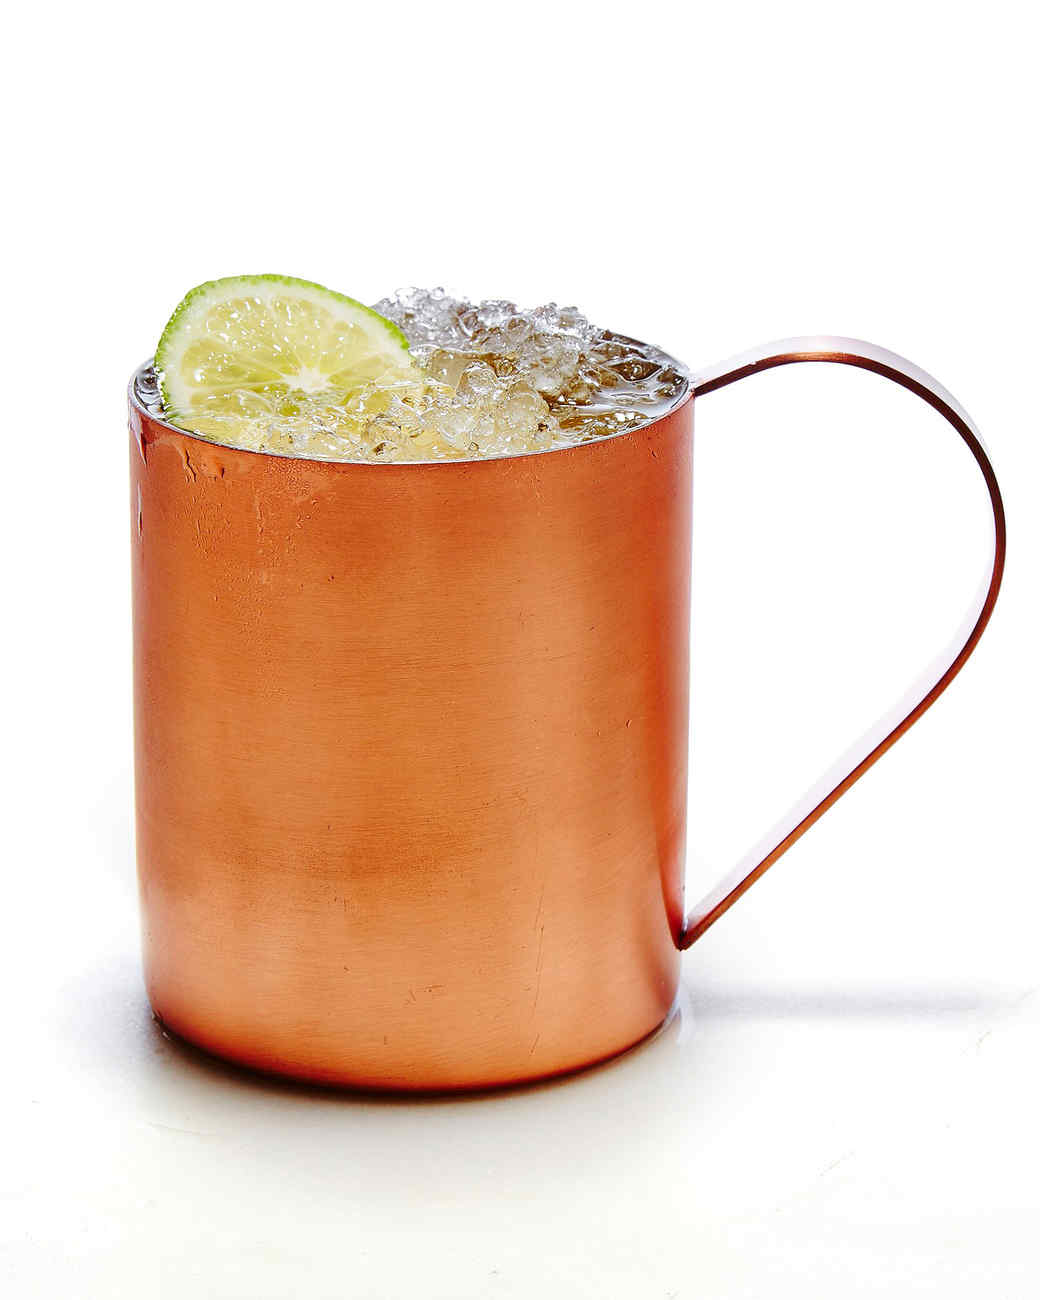 Moscow-mule-cocktail-102882437_vert